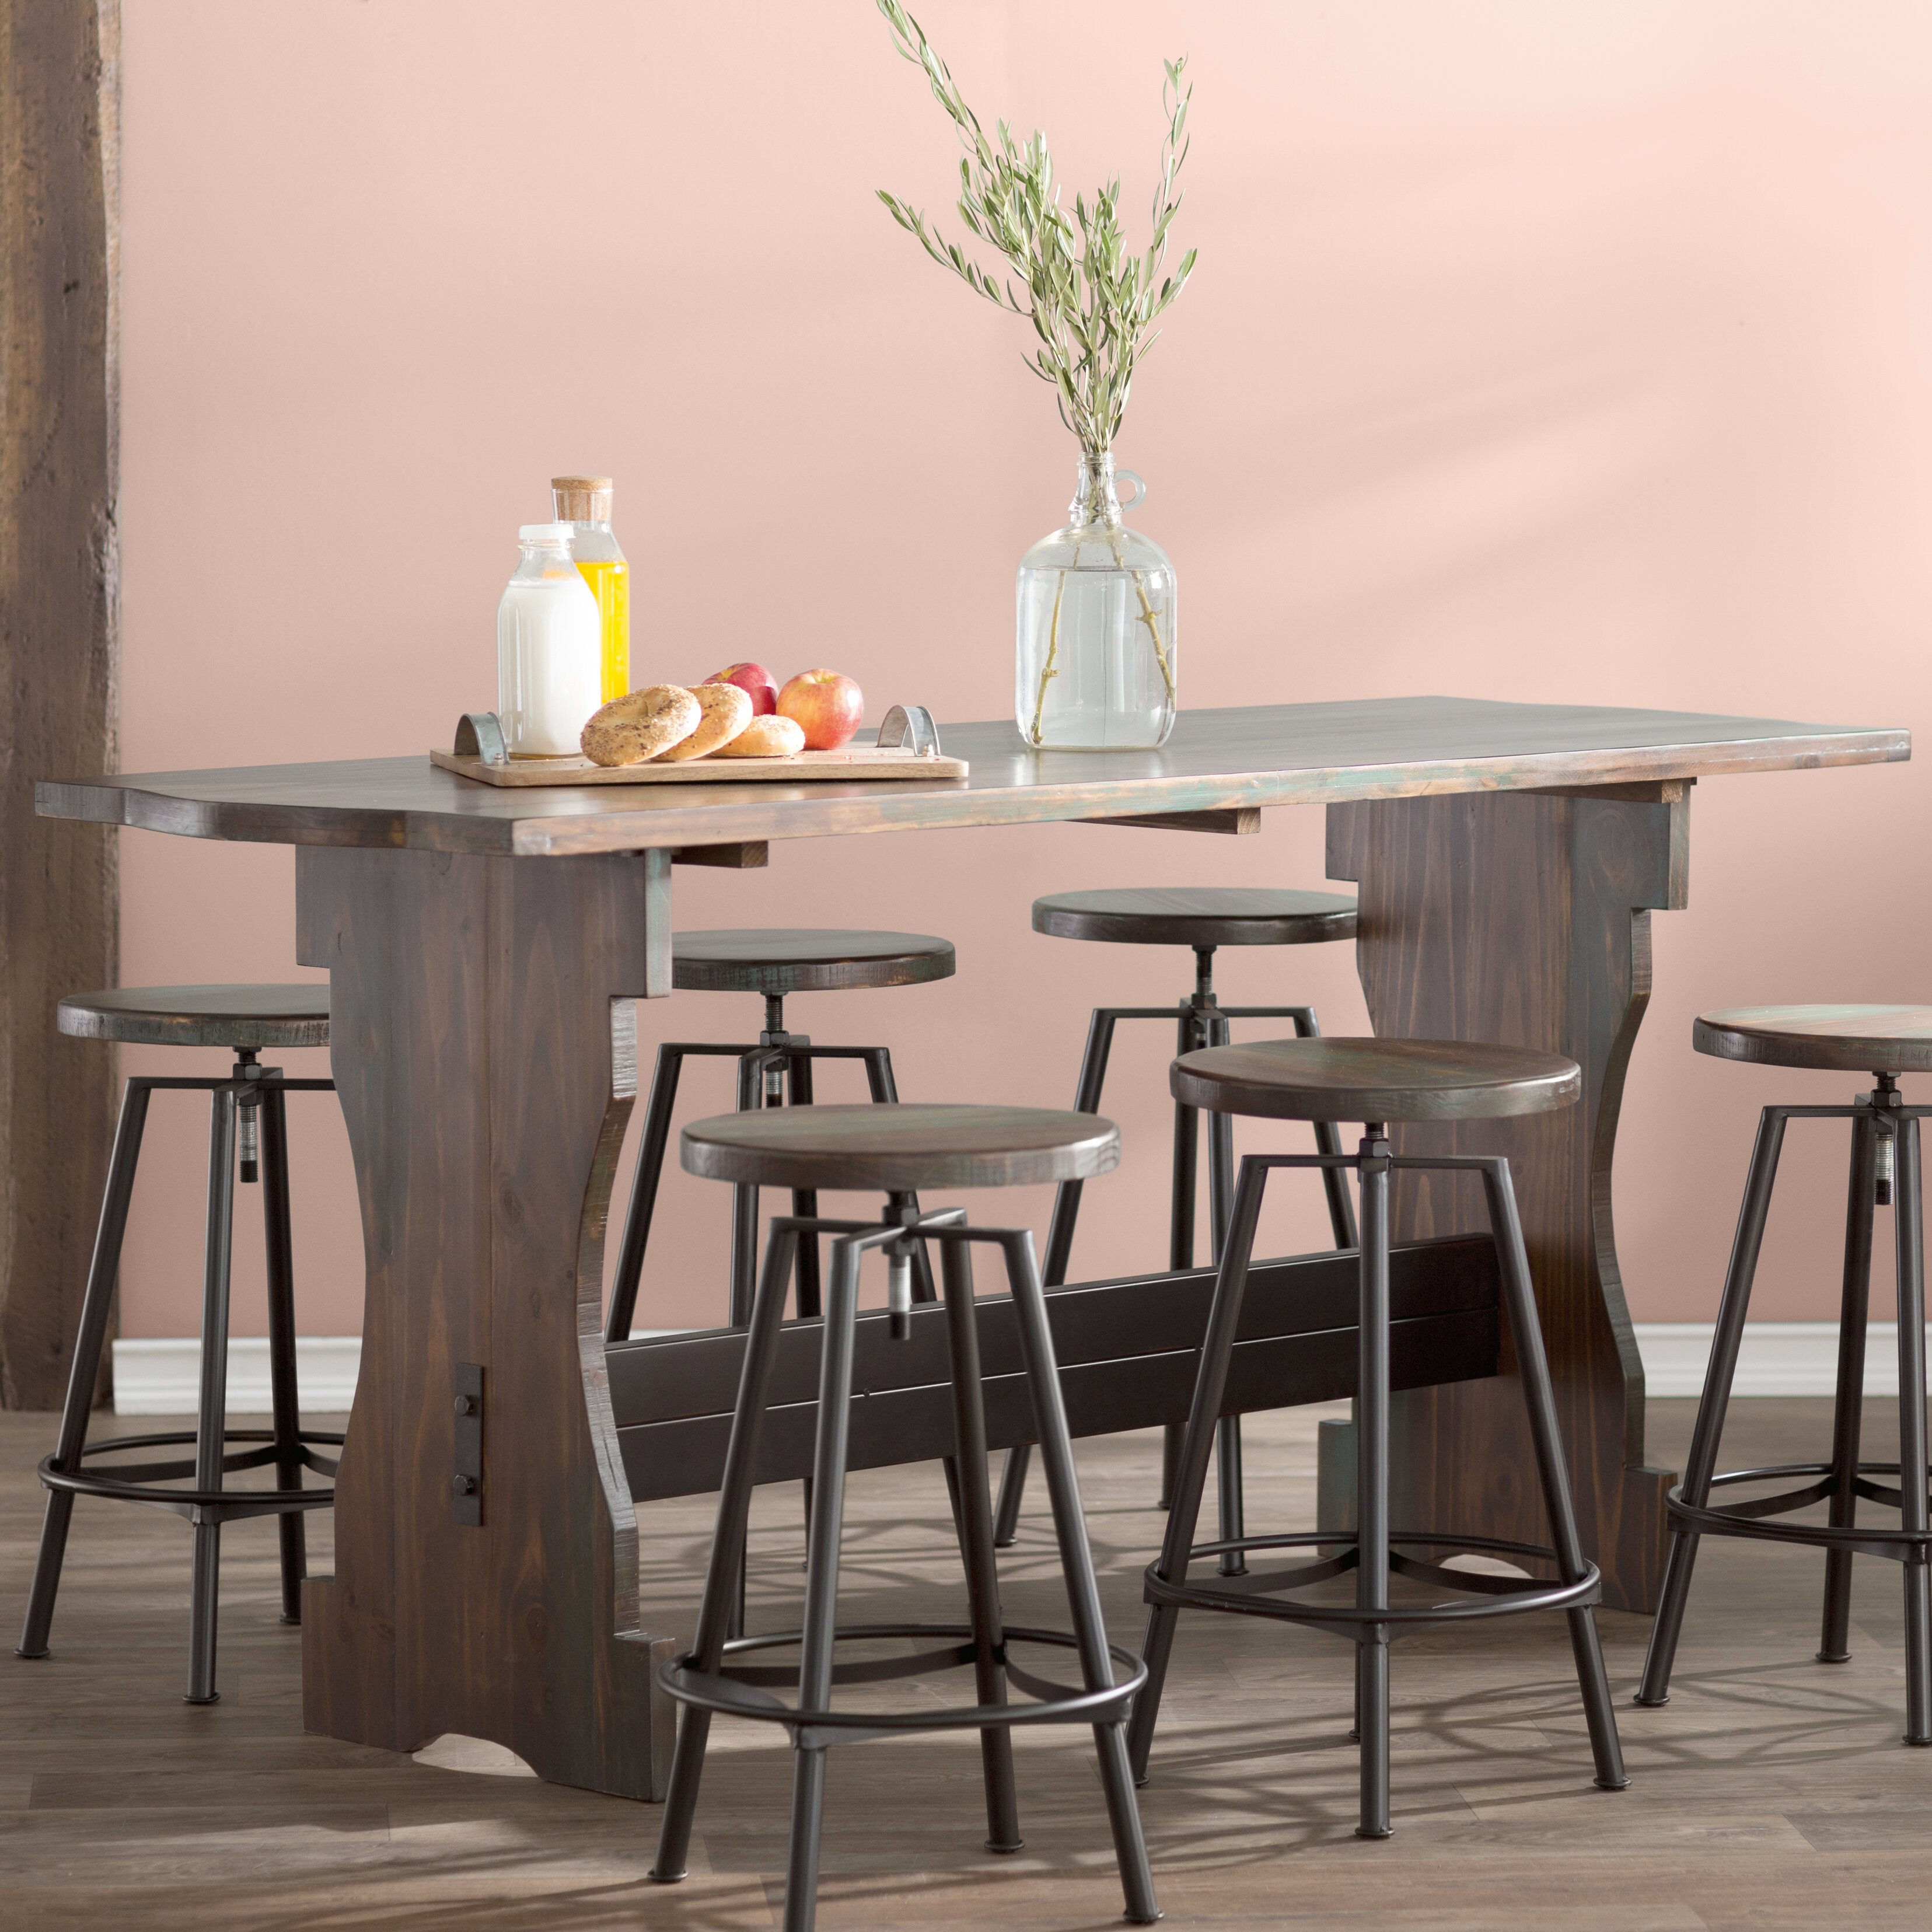 Laurel Foundry Modern Farmhouse Connery 7 Piece Counter Height Pub Table Set | Wayfair : counter height pub table set - pezcame.com